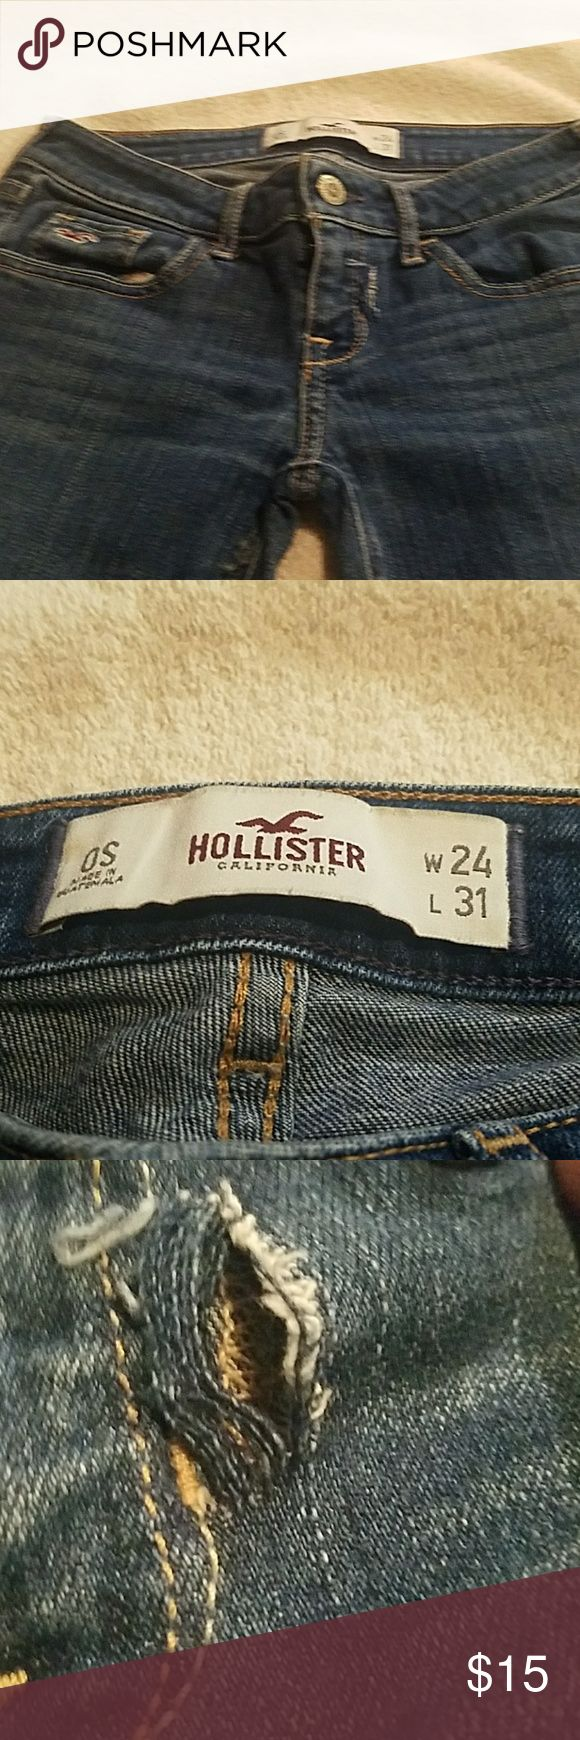 Hollister Jeans Size W24 L31 HOLLISTER  JEANS SIZE W24 L31 GENTLY WORN , PLEASE LOOK AT THE PICTURES CAREFULLY Hollister Jeans Straight Leg